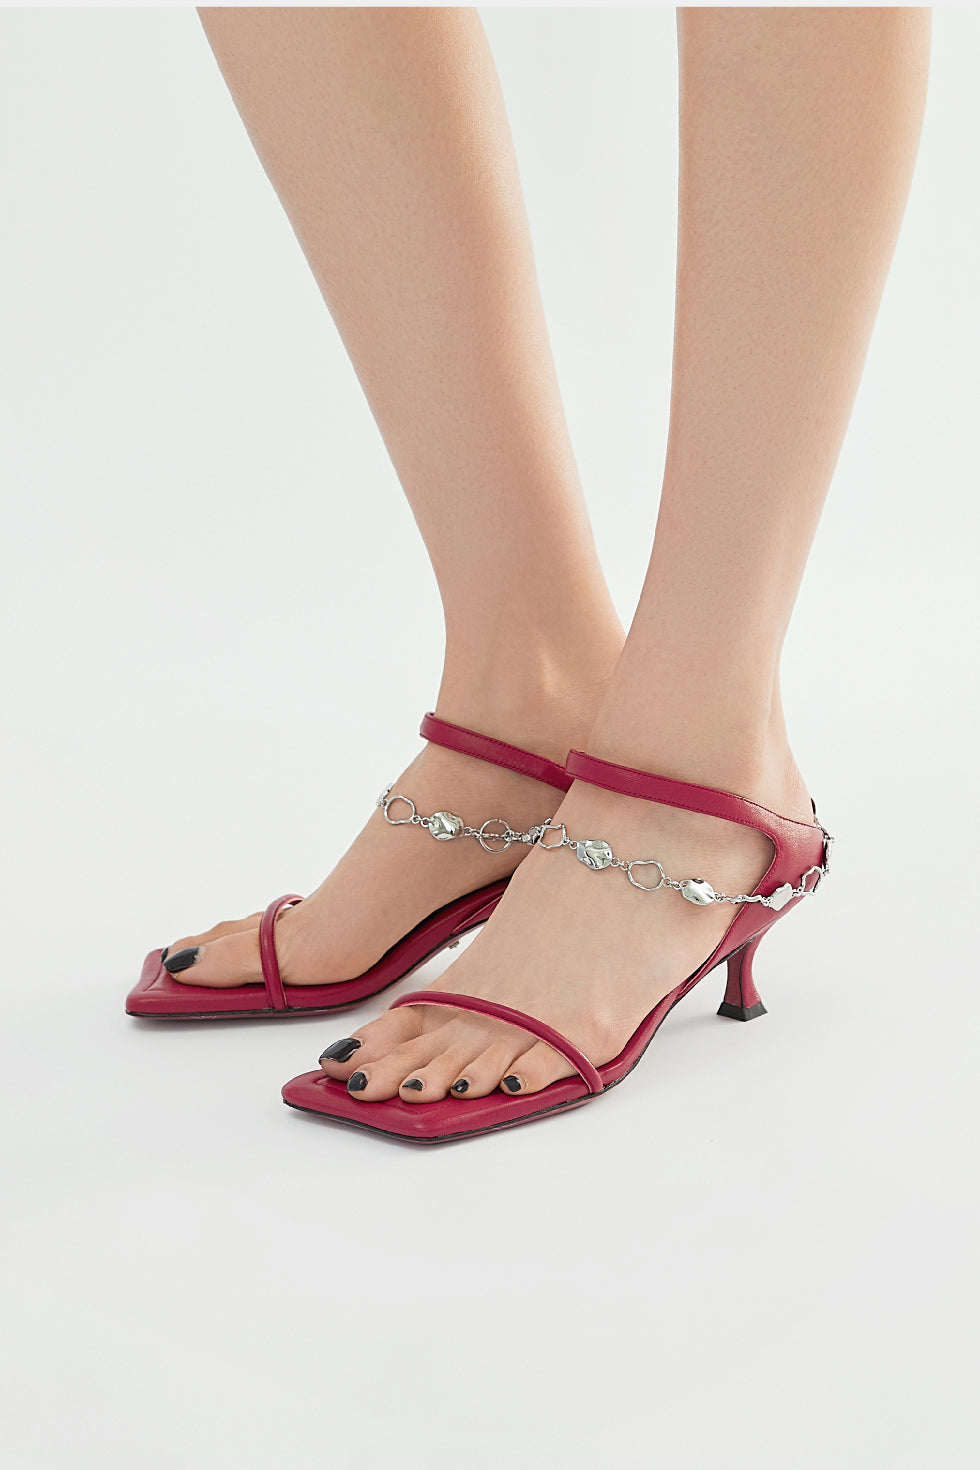 Paz Metal Chain Square Slippers - Red